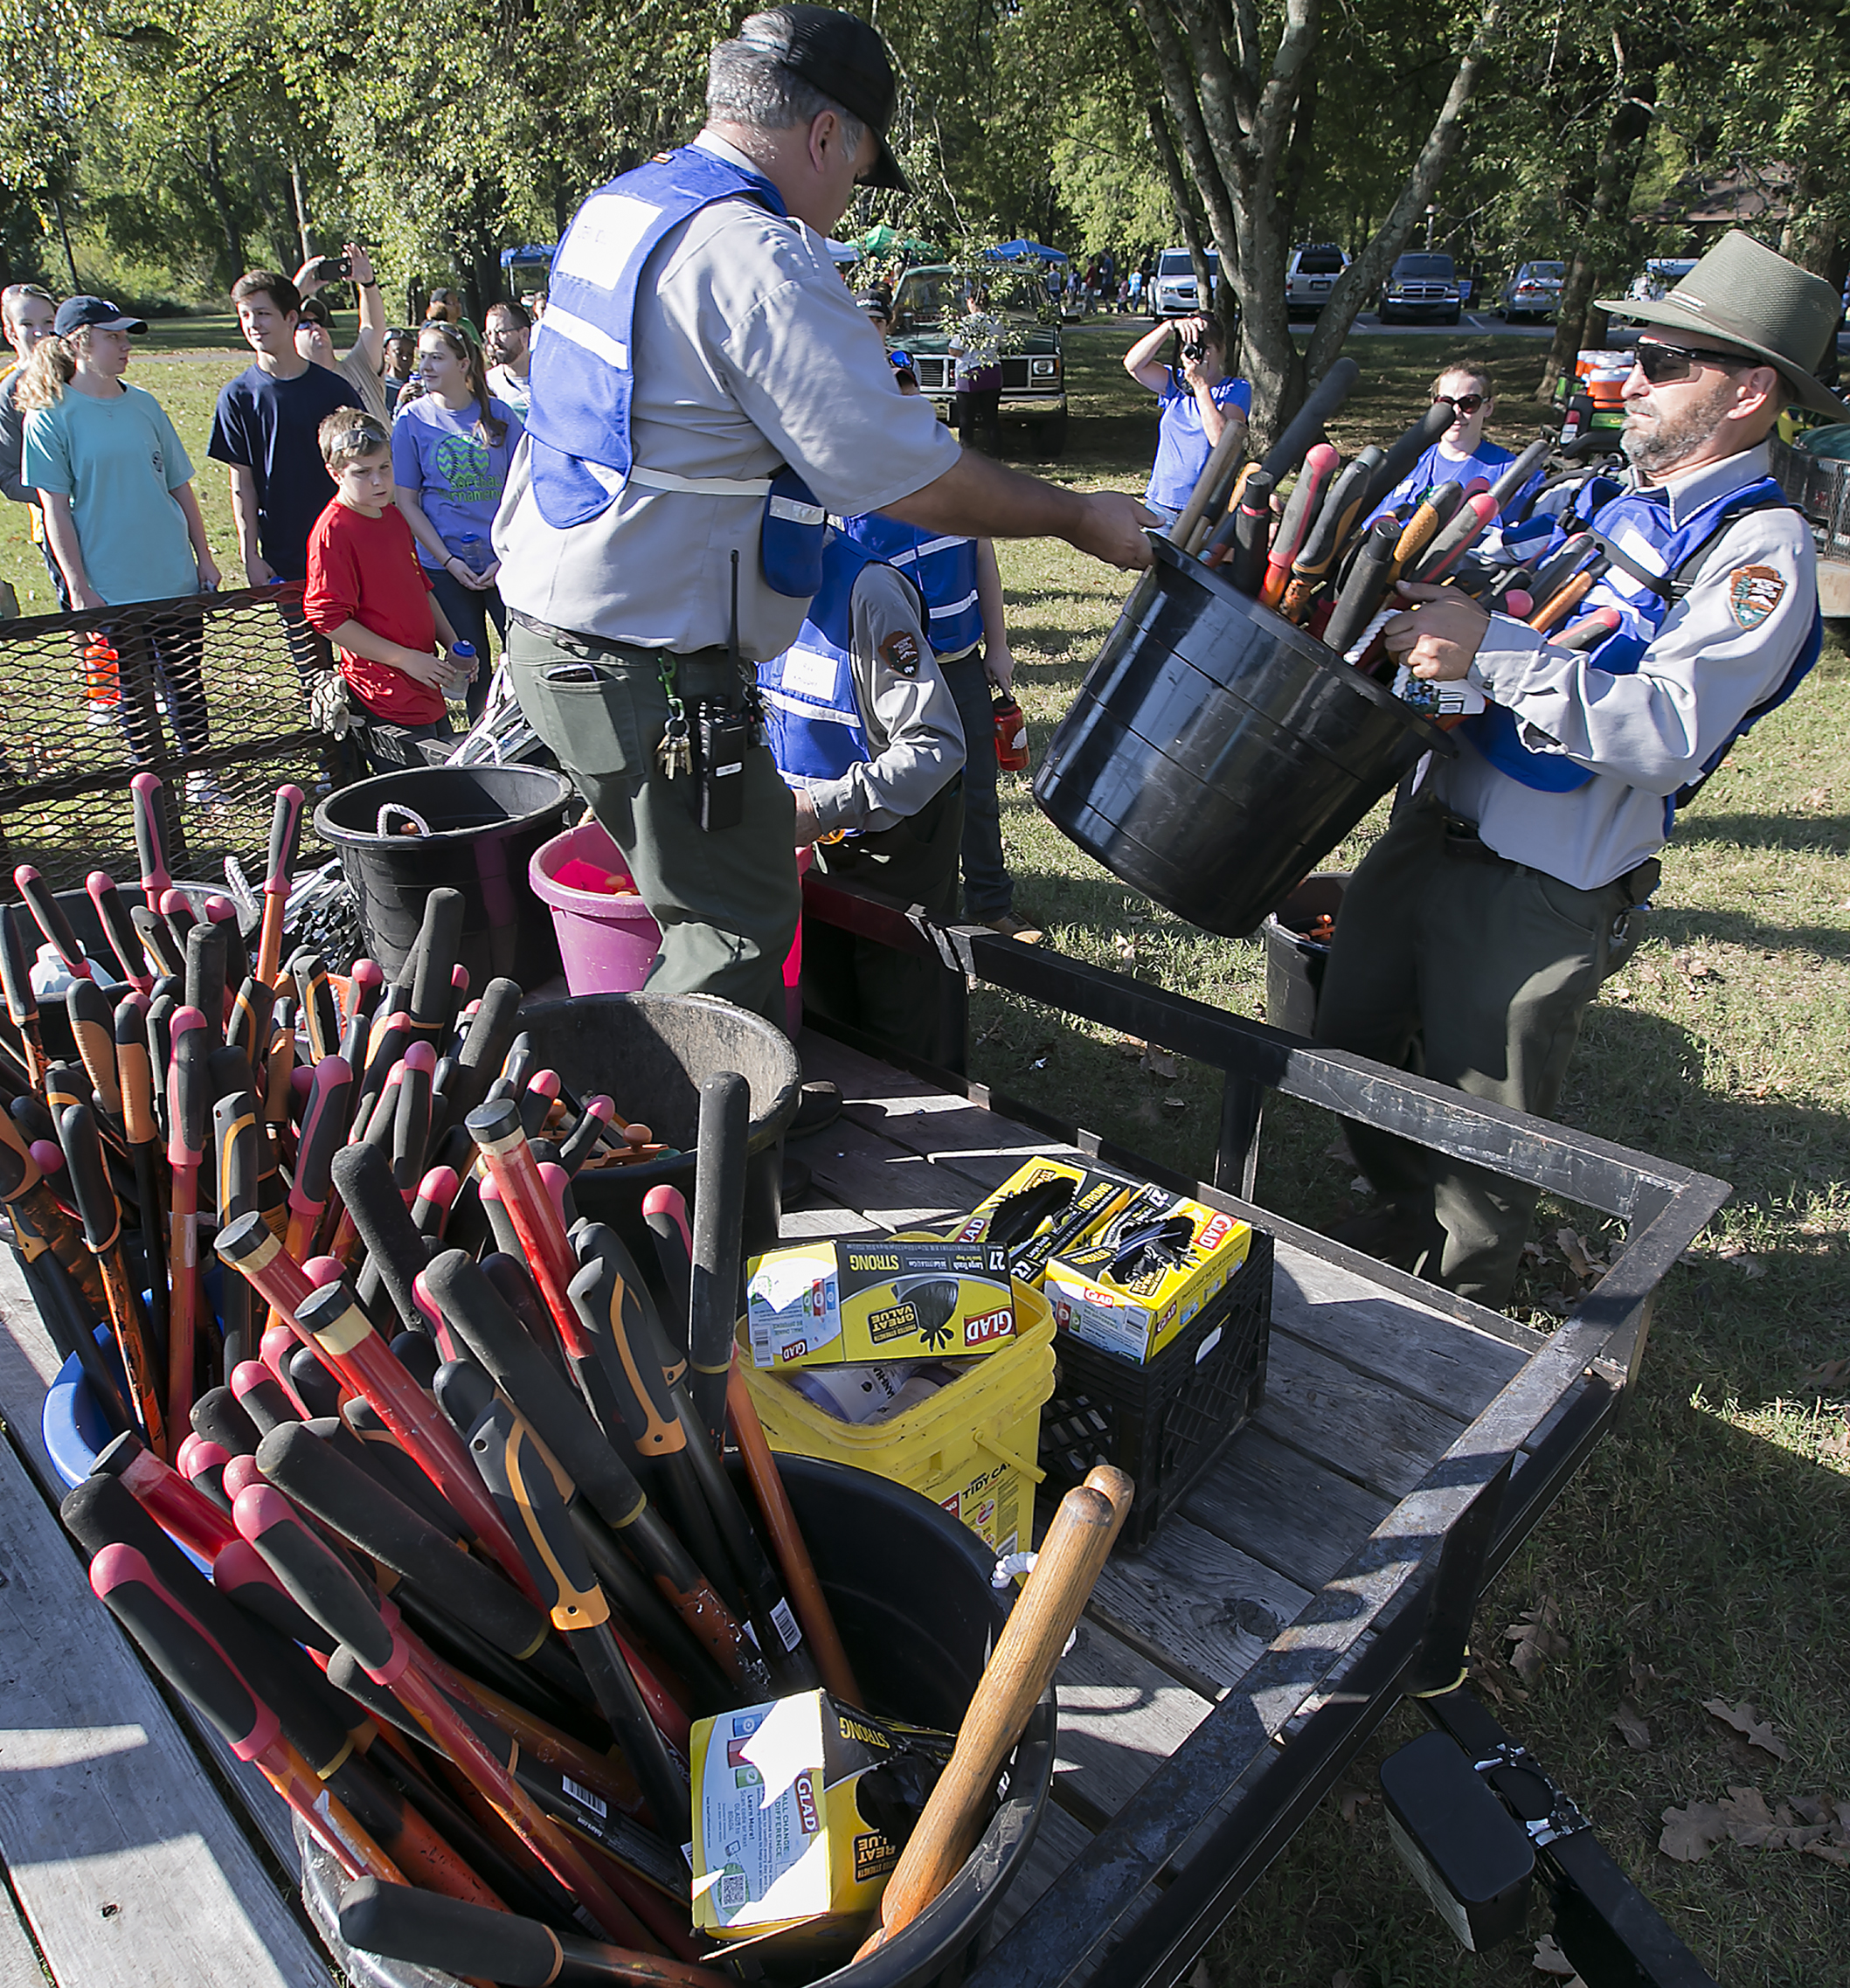 Cranbrook School Shooting Team 1947: Parks Cleaned By Local Volunteers For National Land Day